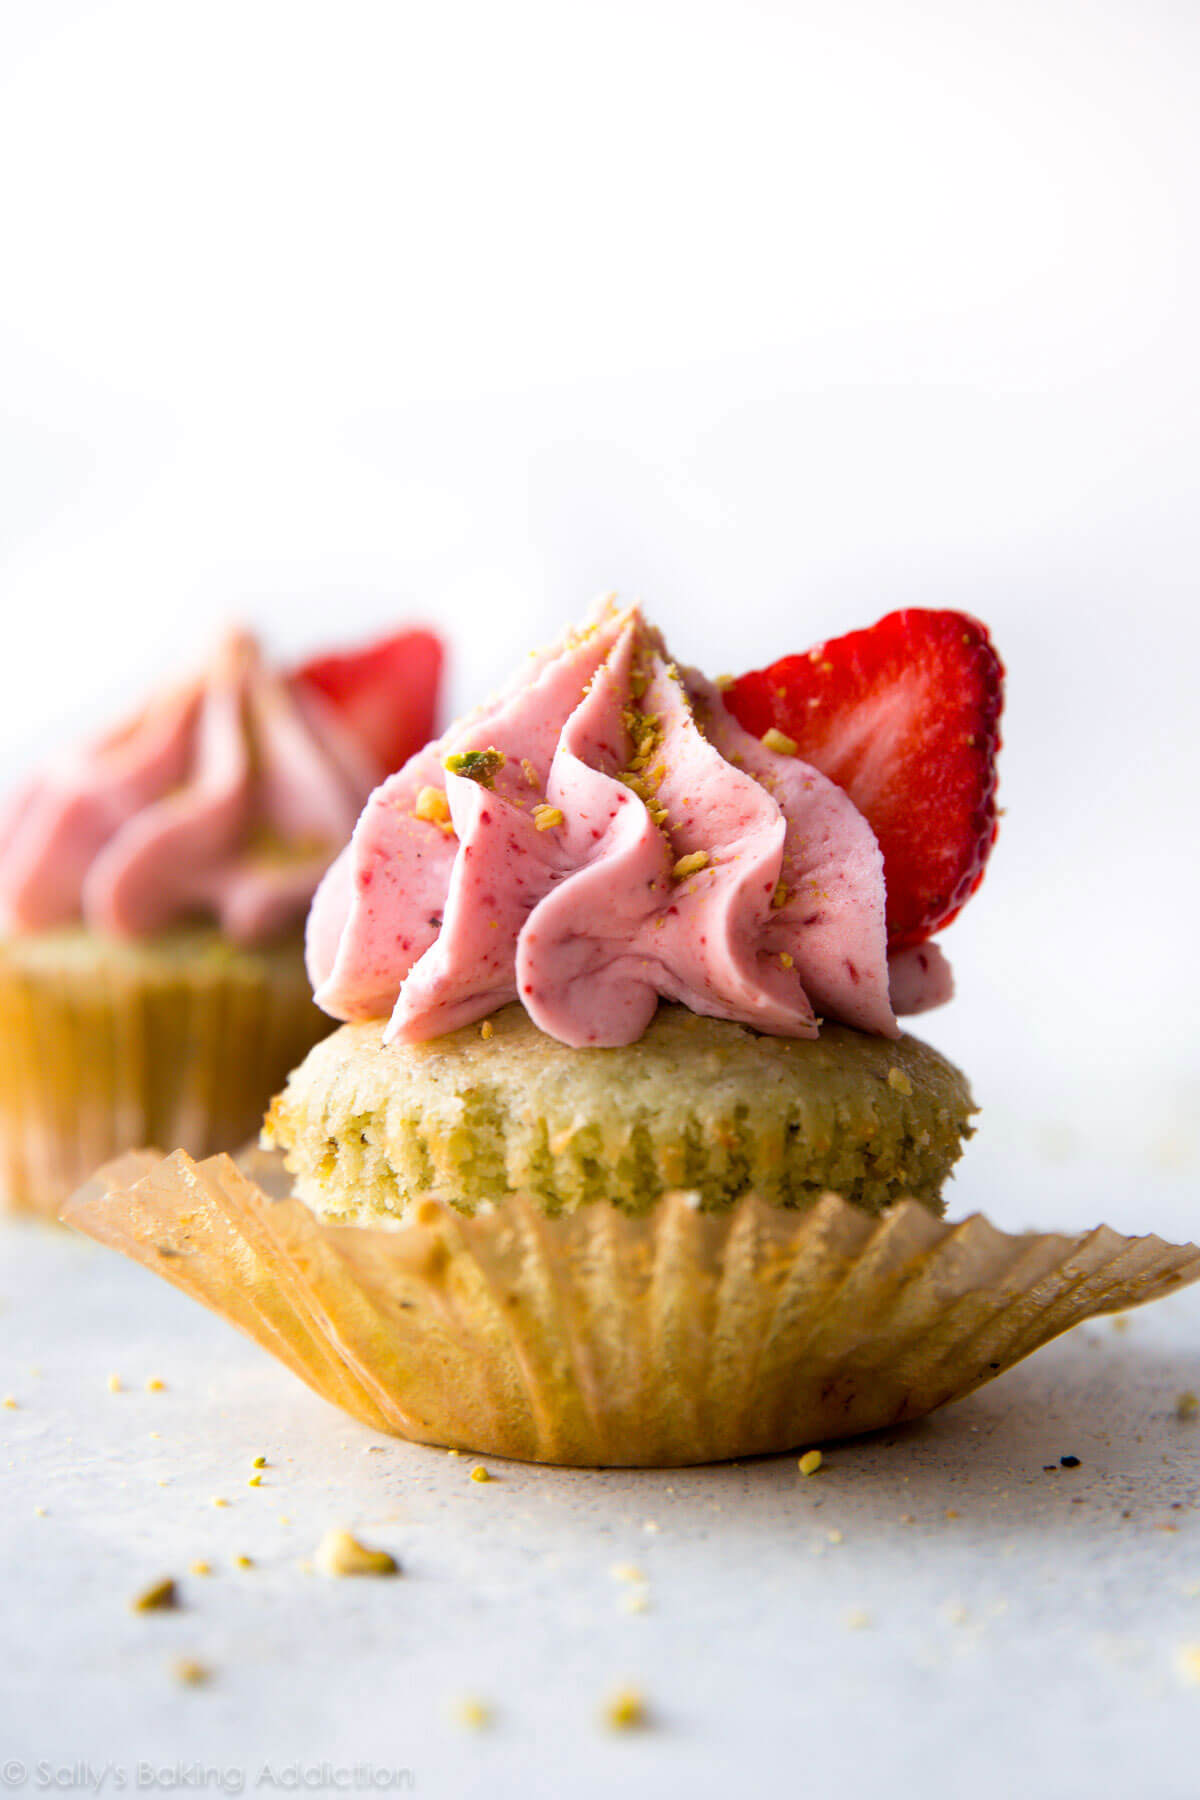 Pistachio Cupcakes with Creamy Strawberry Frosting